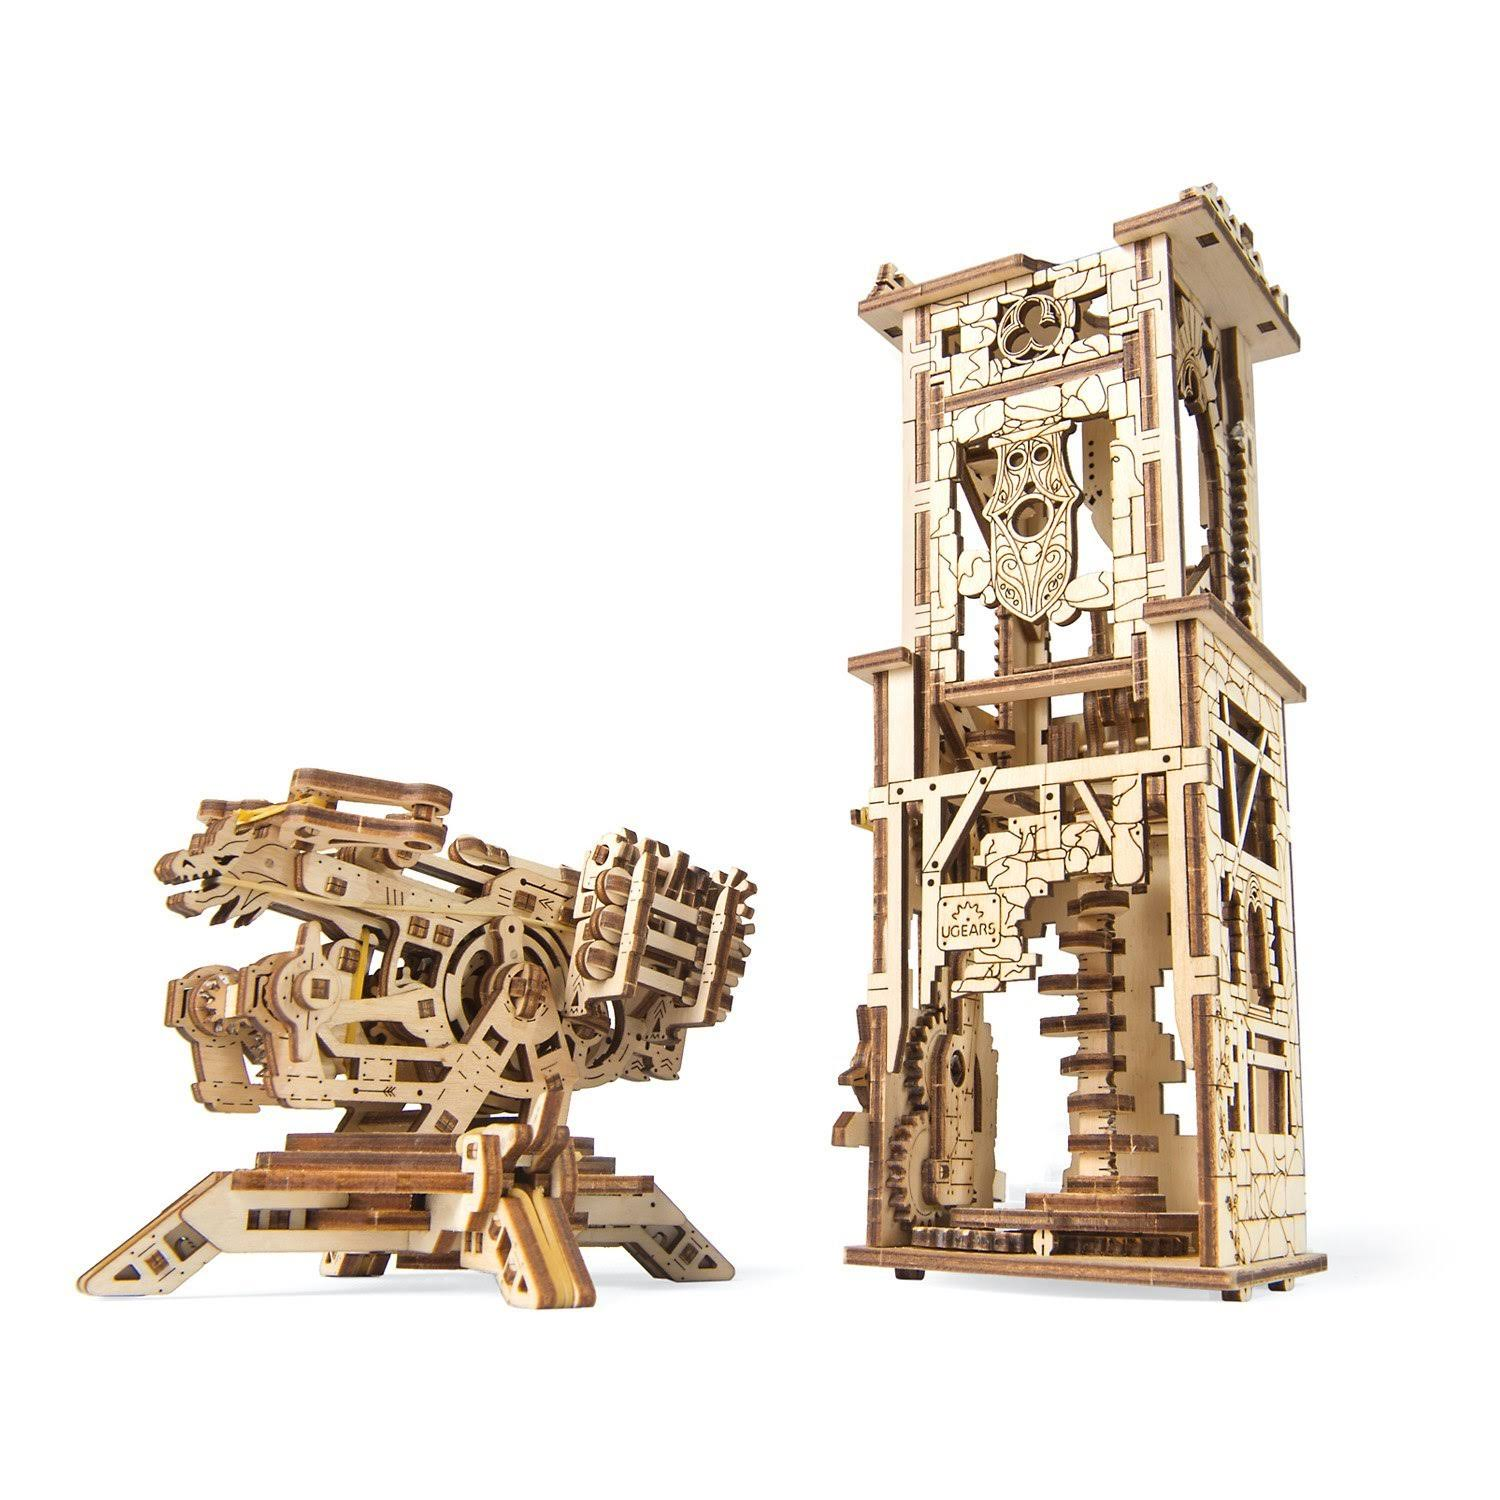 UGEARS Model Archballista-Tower Mechanical Wooden Model Kit 70048